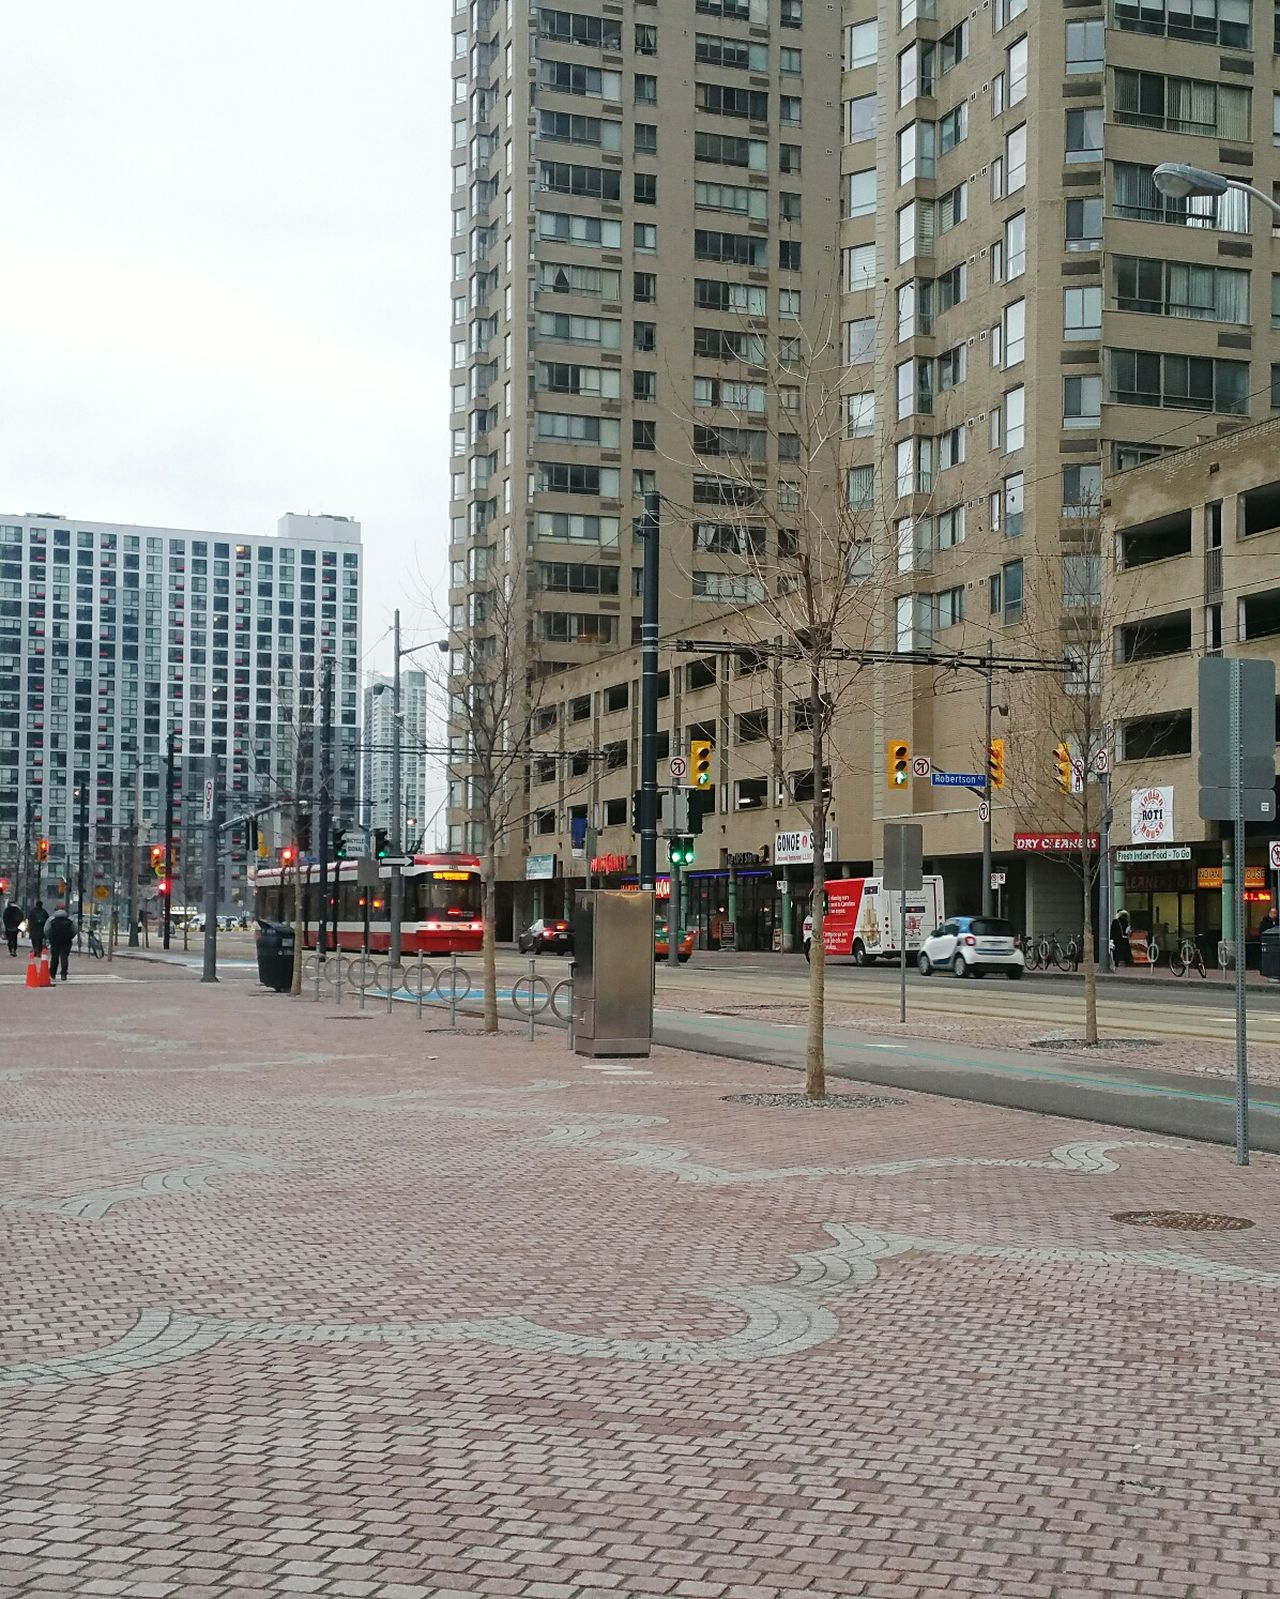 Toronto Transit Snaps City Architecture Building Exterior City Life Urban City Morning Winter Morning Toronto Downtown Streetcar Ttcstreetcar Commuting Harbourfront